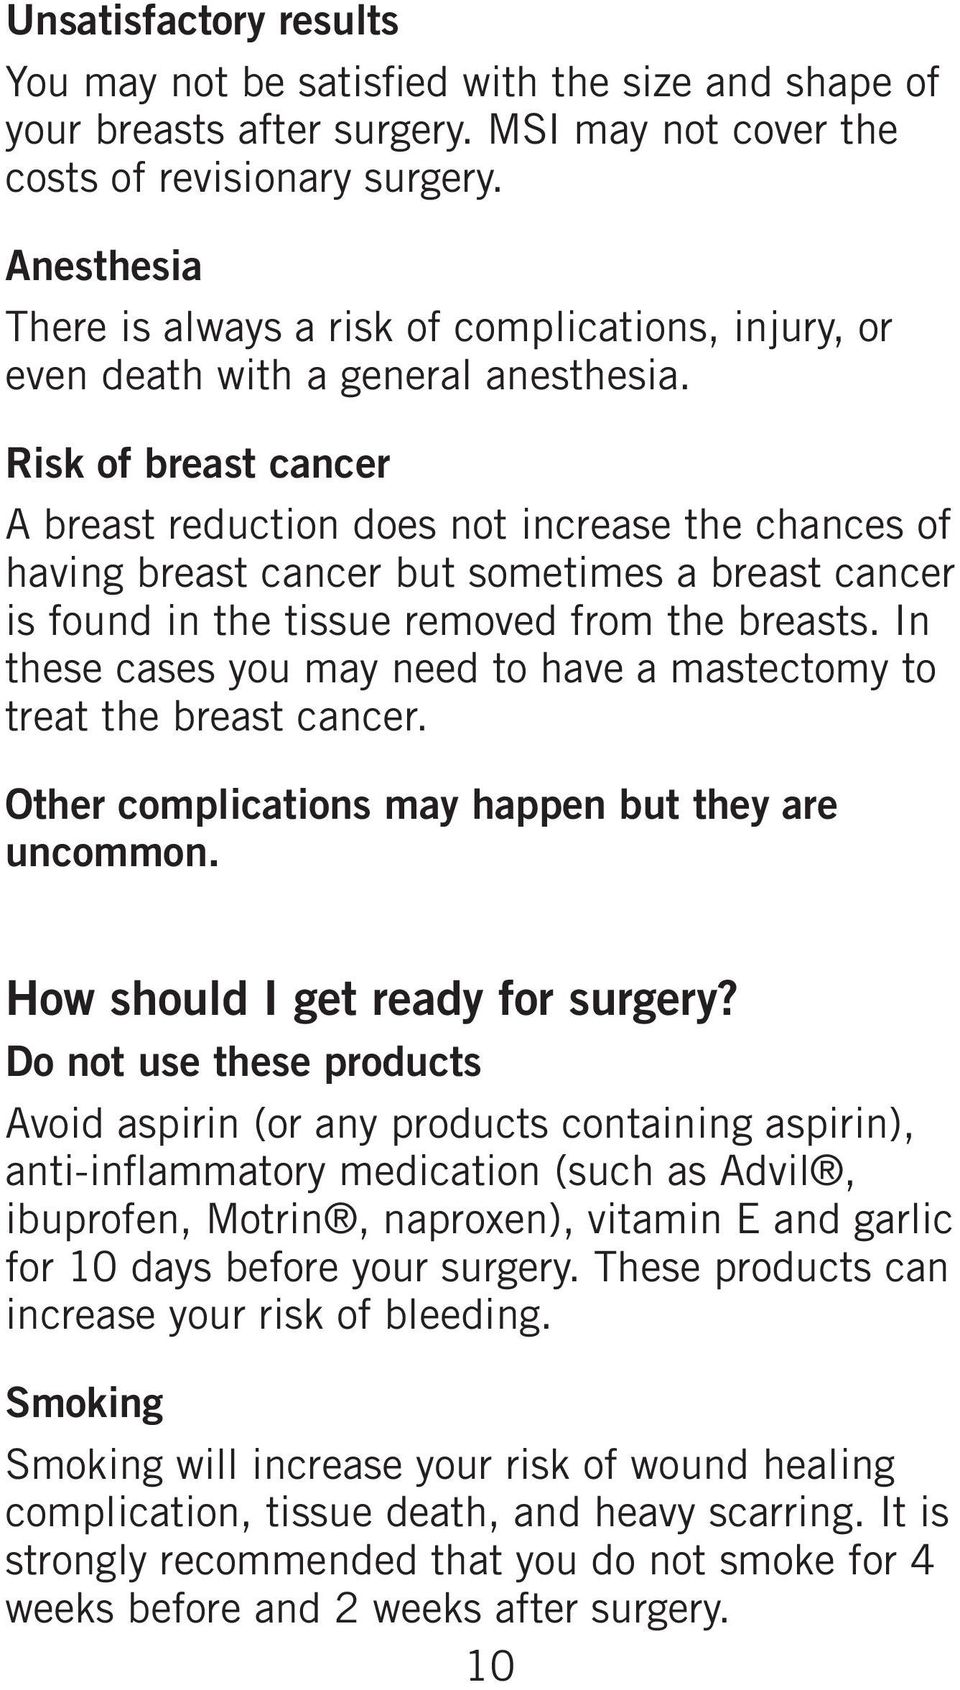 Risk of breast cancer A breast reduction does not increase the chances of having breast cancer but sometimes a breast cancer is found in the tissue removed from the breasts.